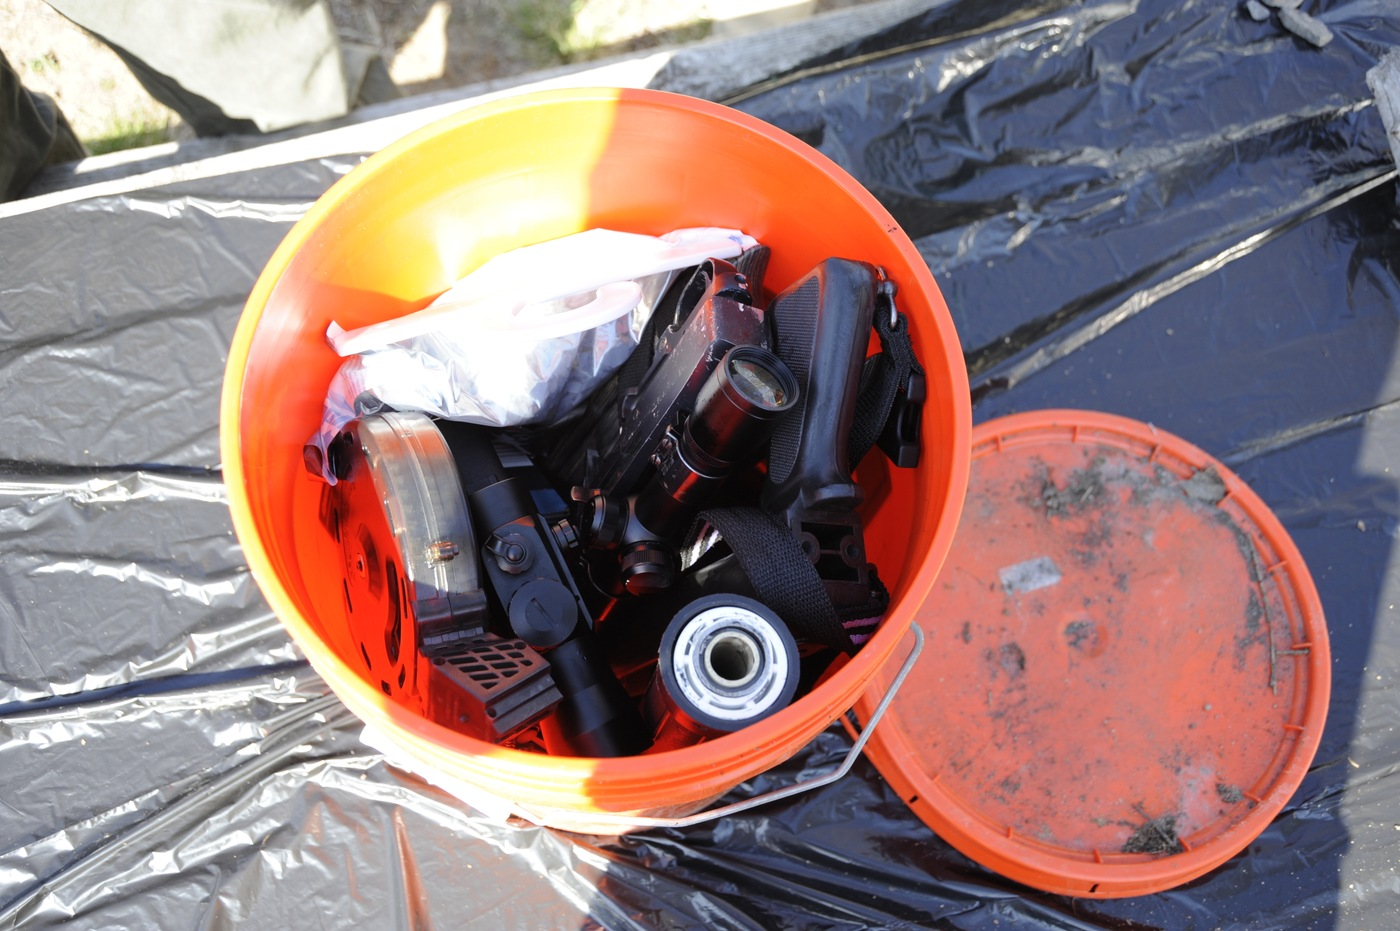 Keyes' cache in New York was stowed in a watertight bucket. Materials inside included a .22-caliber Ruger weapon without a stock, empty magazines, ammunition, and a silencer.